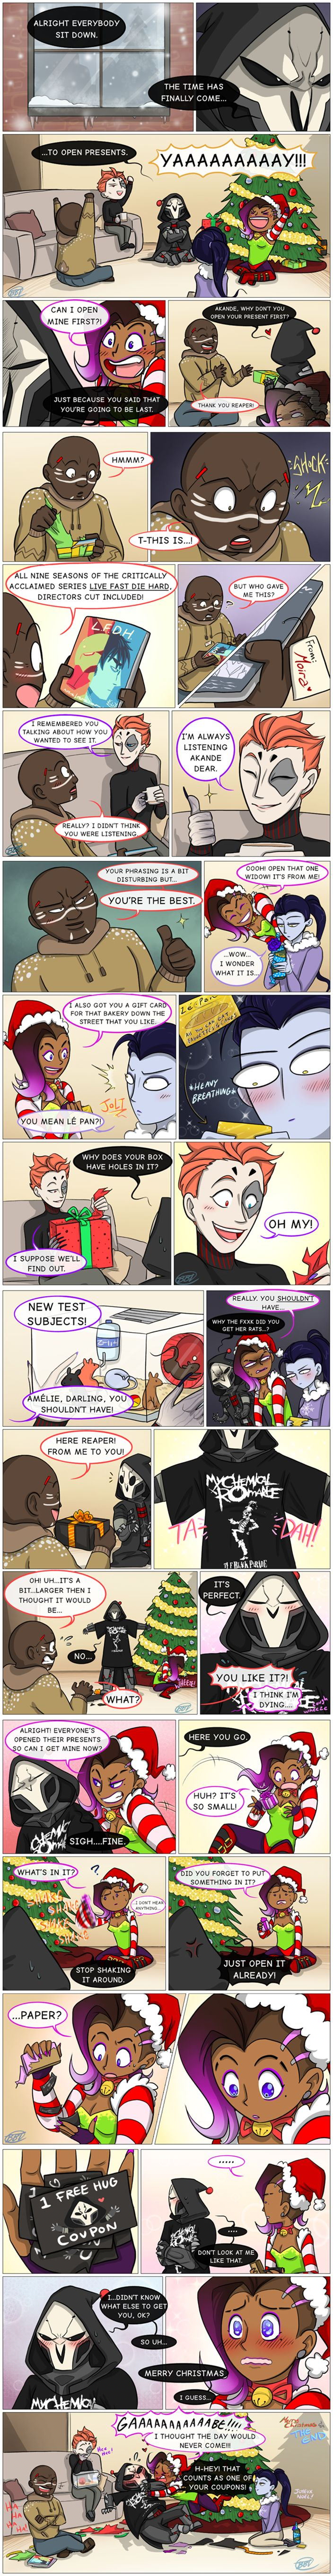 They may be terrorists and murderers (and a hacker), but Talon takes Secret Santa very seriously.